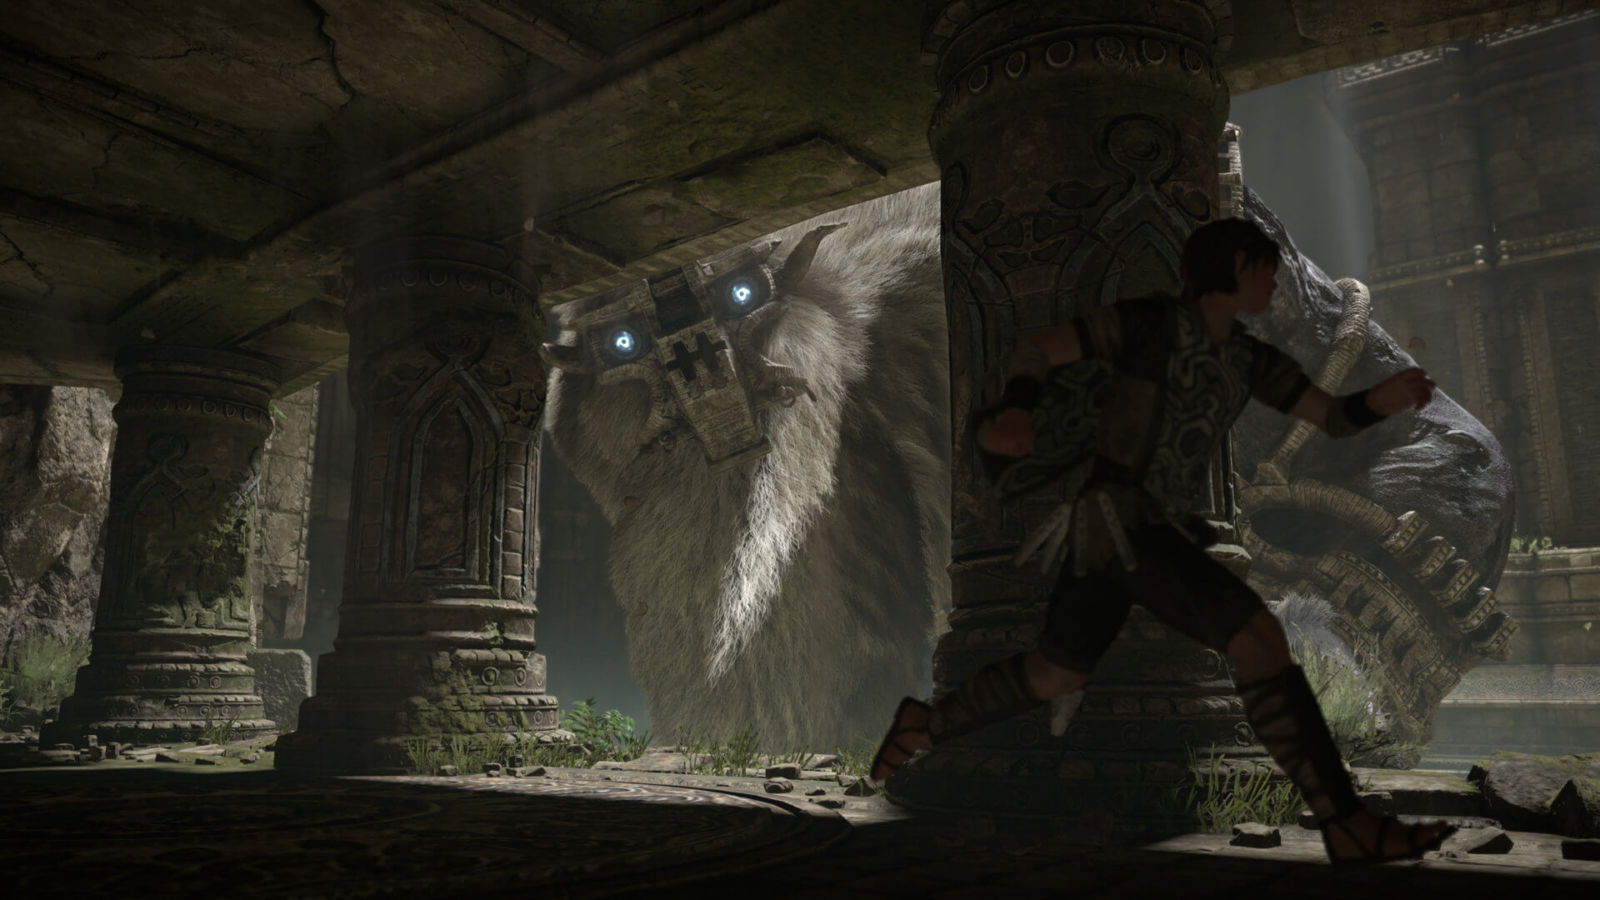 Shadow of the Colossus https://d37x086vserhlm.cloudfront.net/wp-content/uploads/2017/11/03090554/shadow-of-the-colossus-screen-04-ps4-eu-13jun17.jpeg